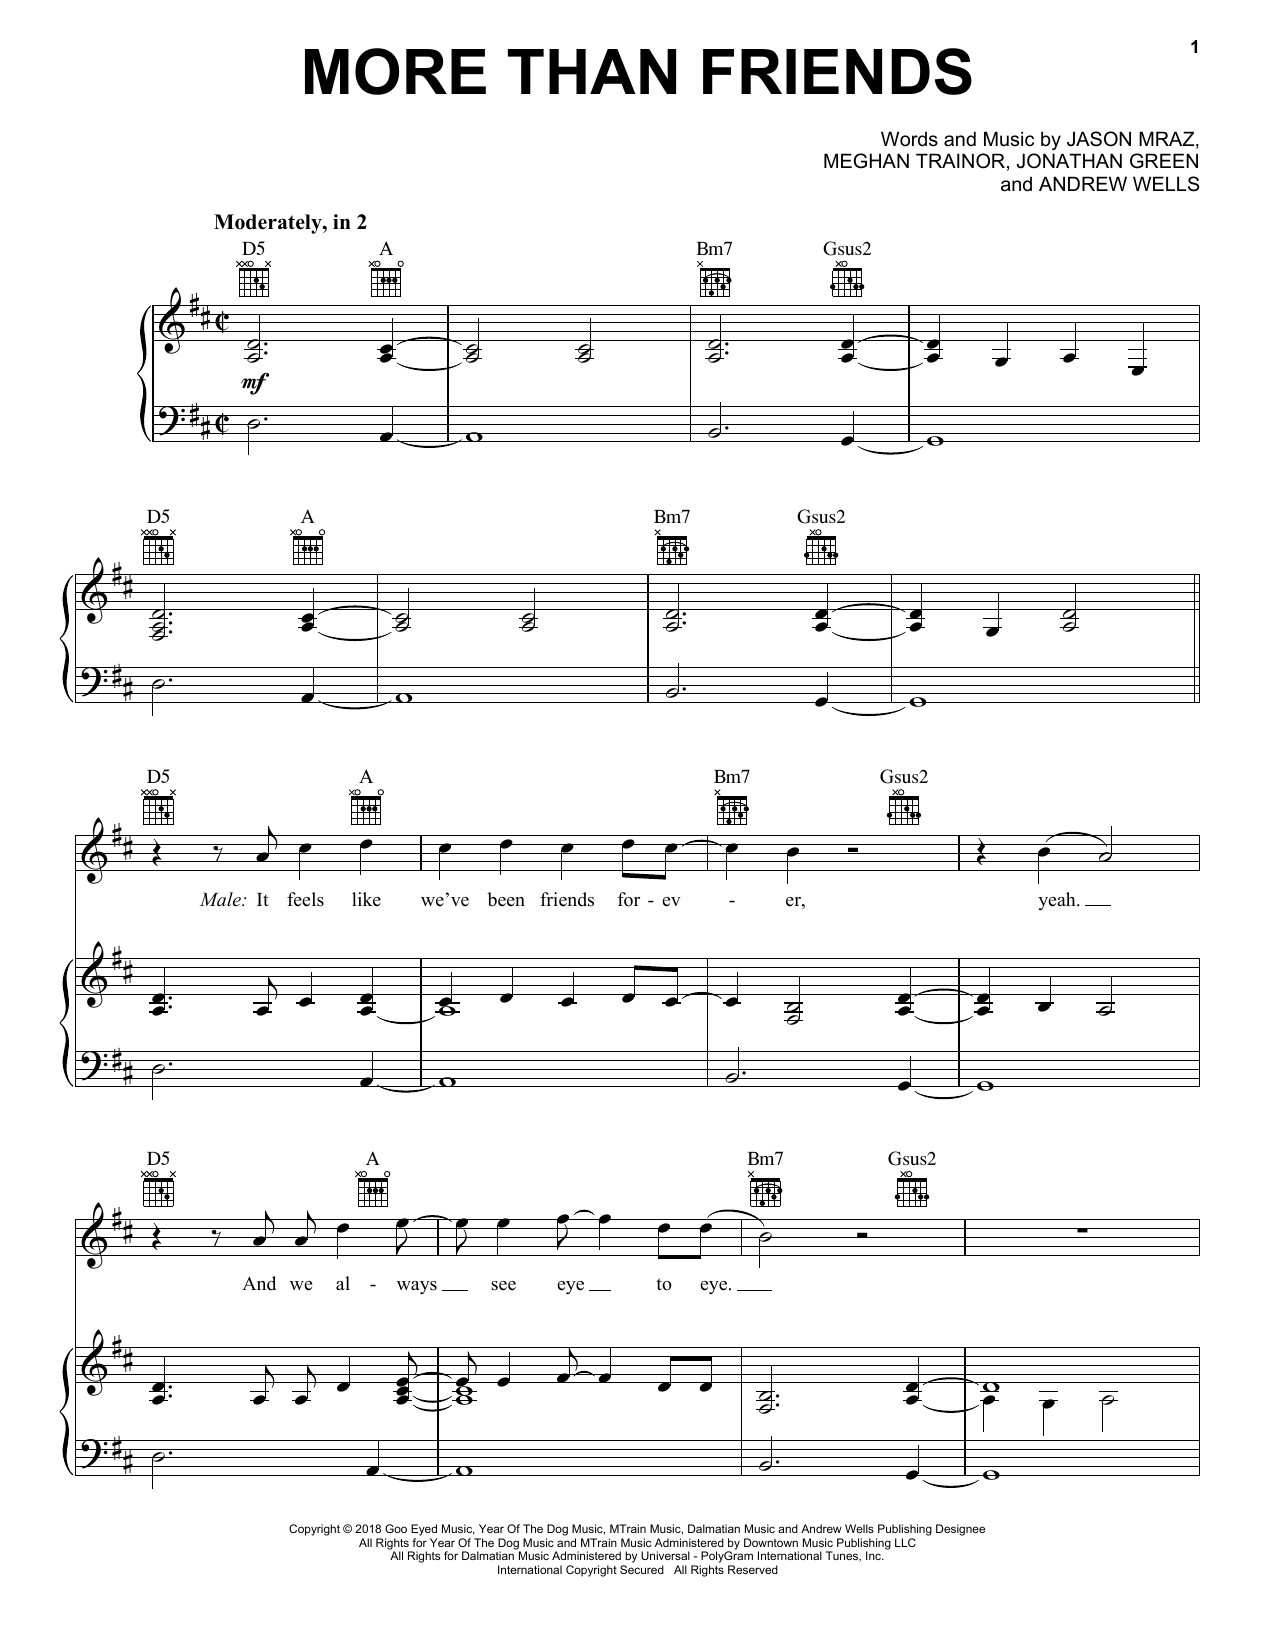 More Than Friends (feat. Meghan Trainor) - Print Sheet Music Now